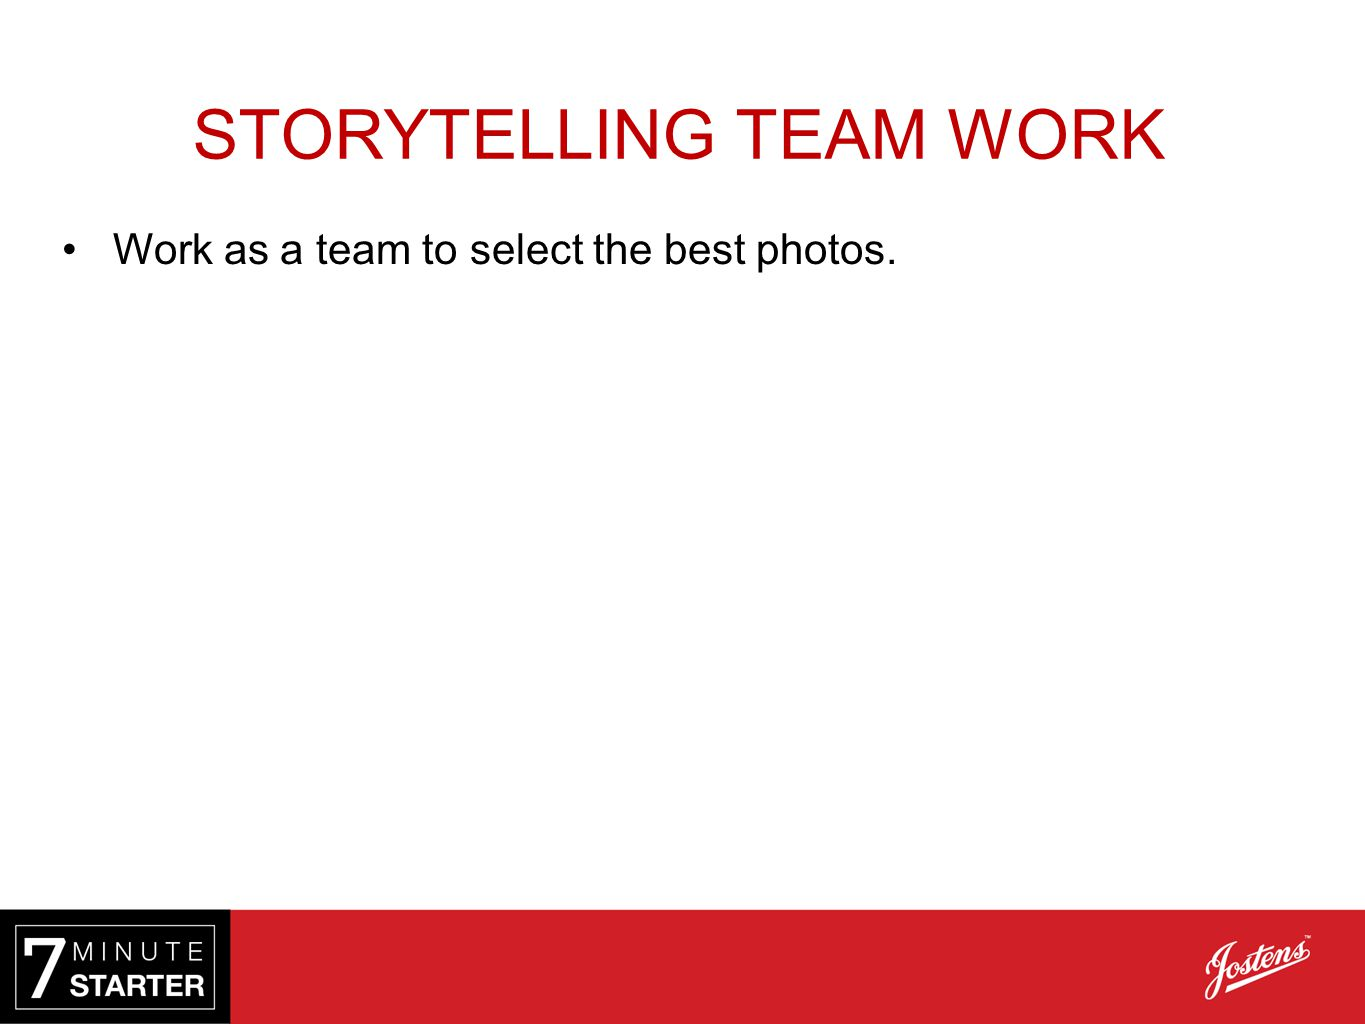 STORYTELLING TEAM WORK Work as a team to select the best photos.